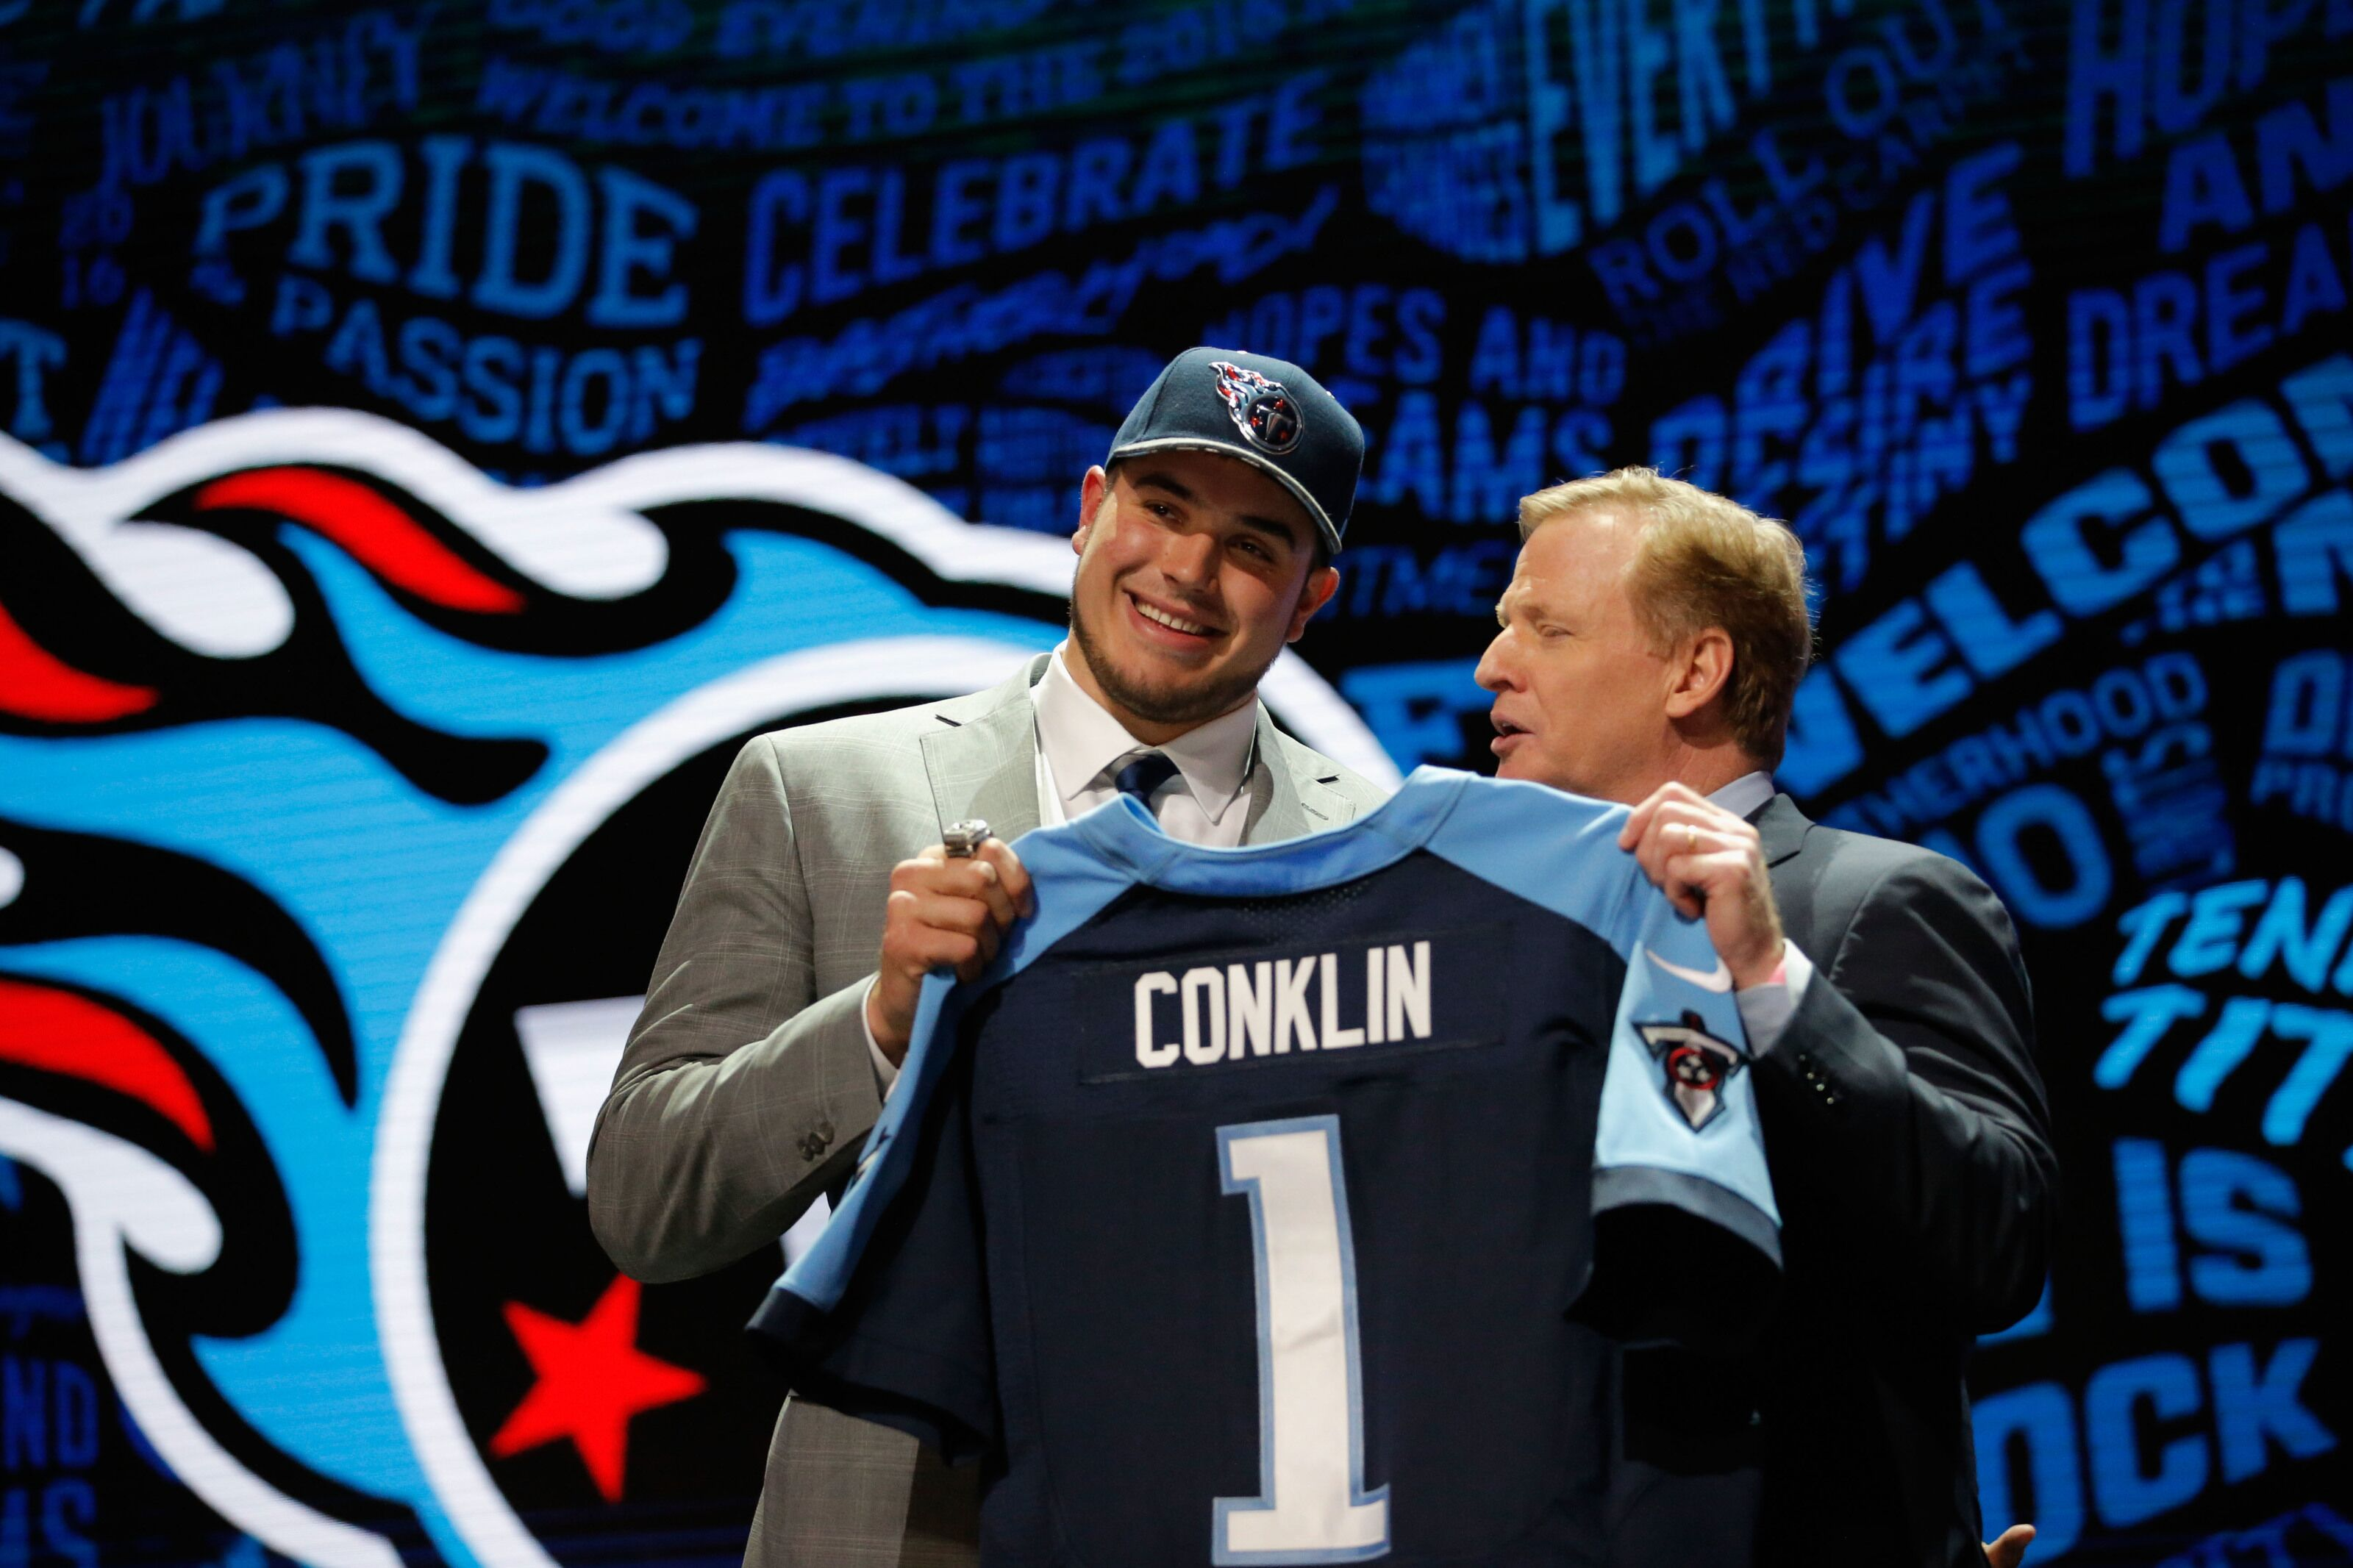 Jack Conklin would be solid addition to Arizona Cardinals